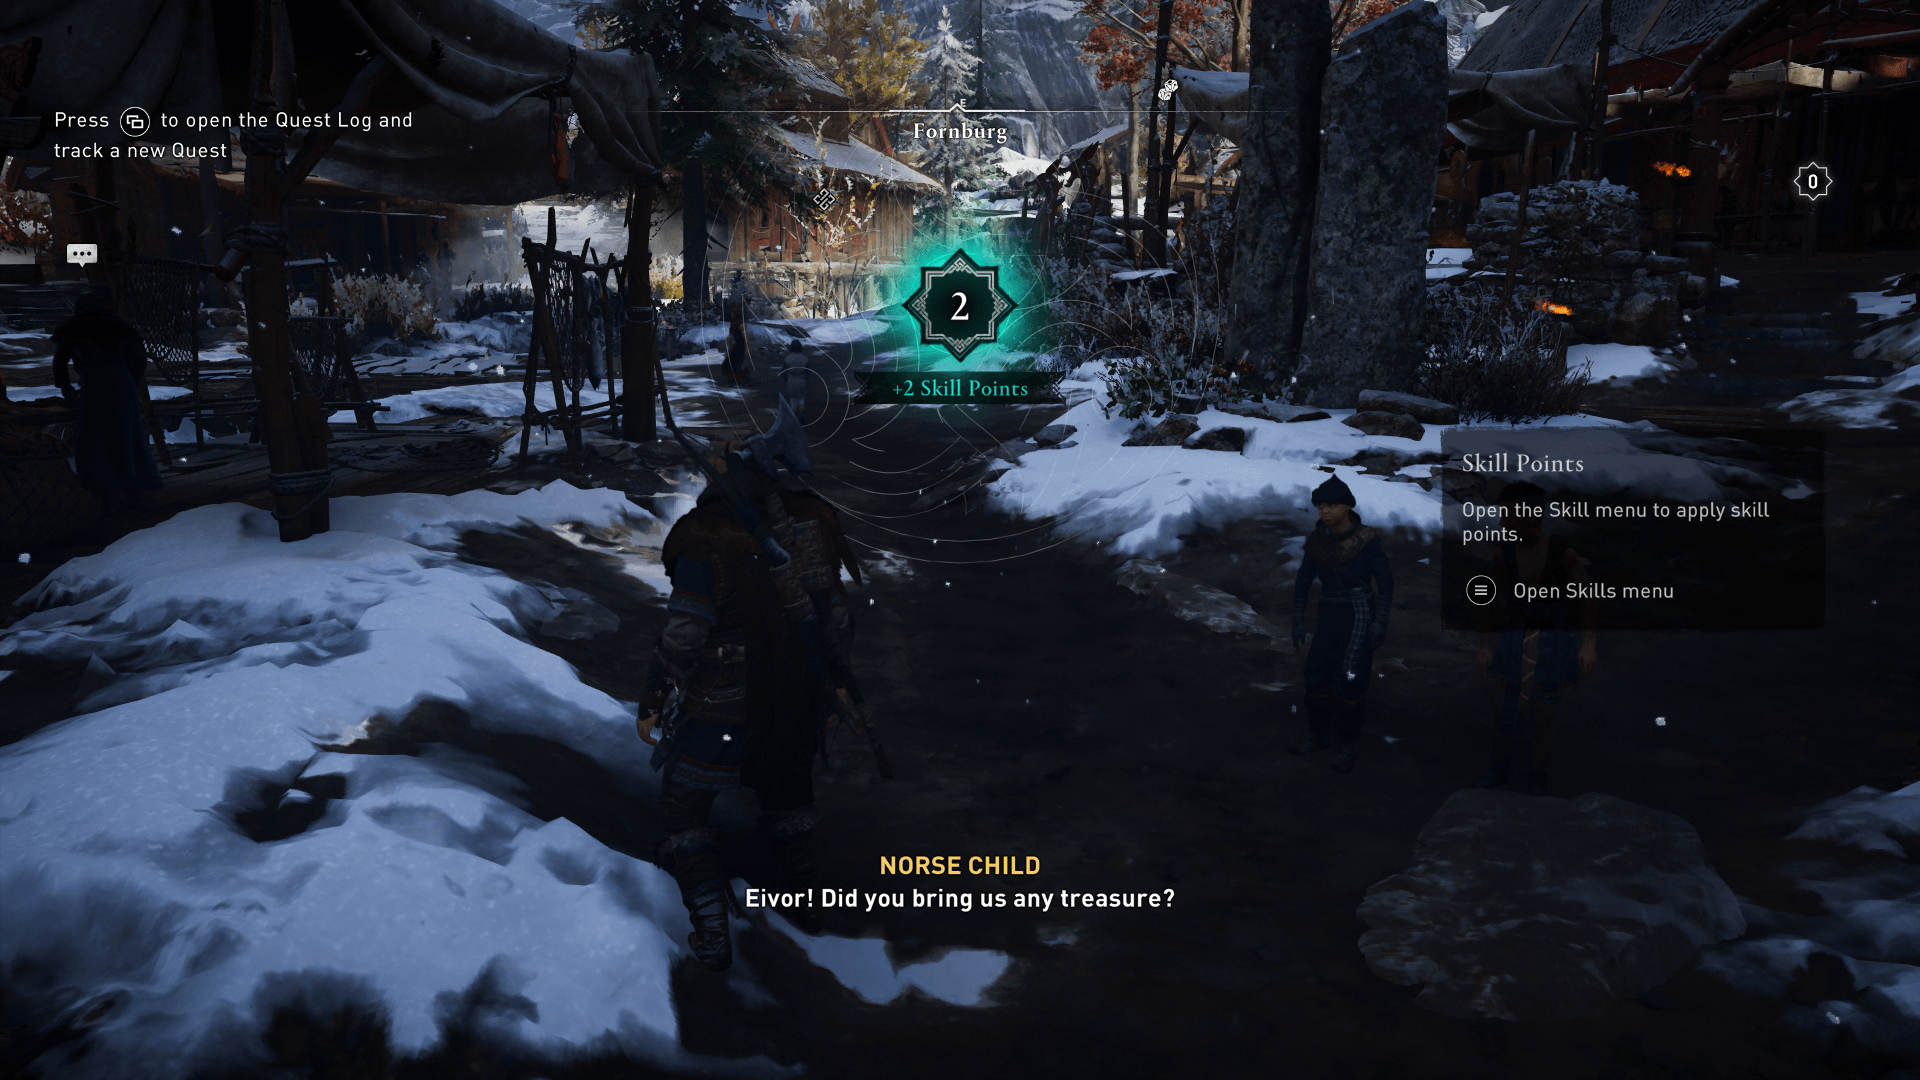 Gain skill points screenshot of Assassin's Creed Valhalla video game interface.